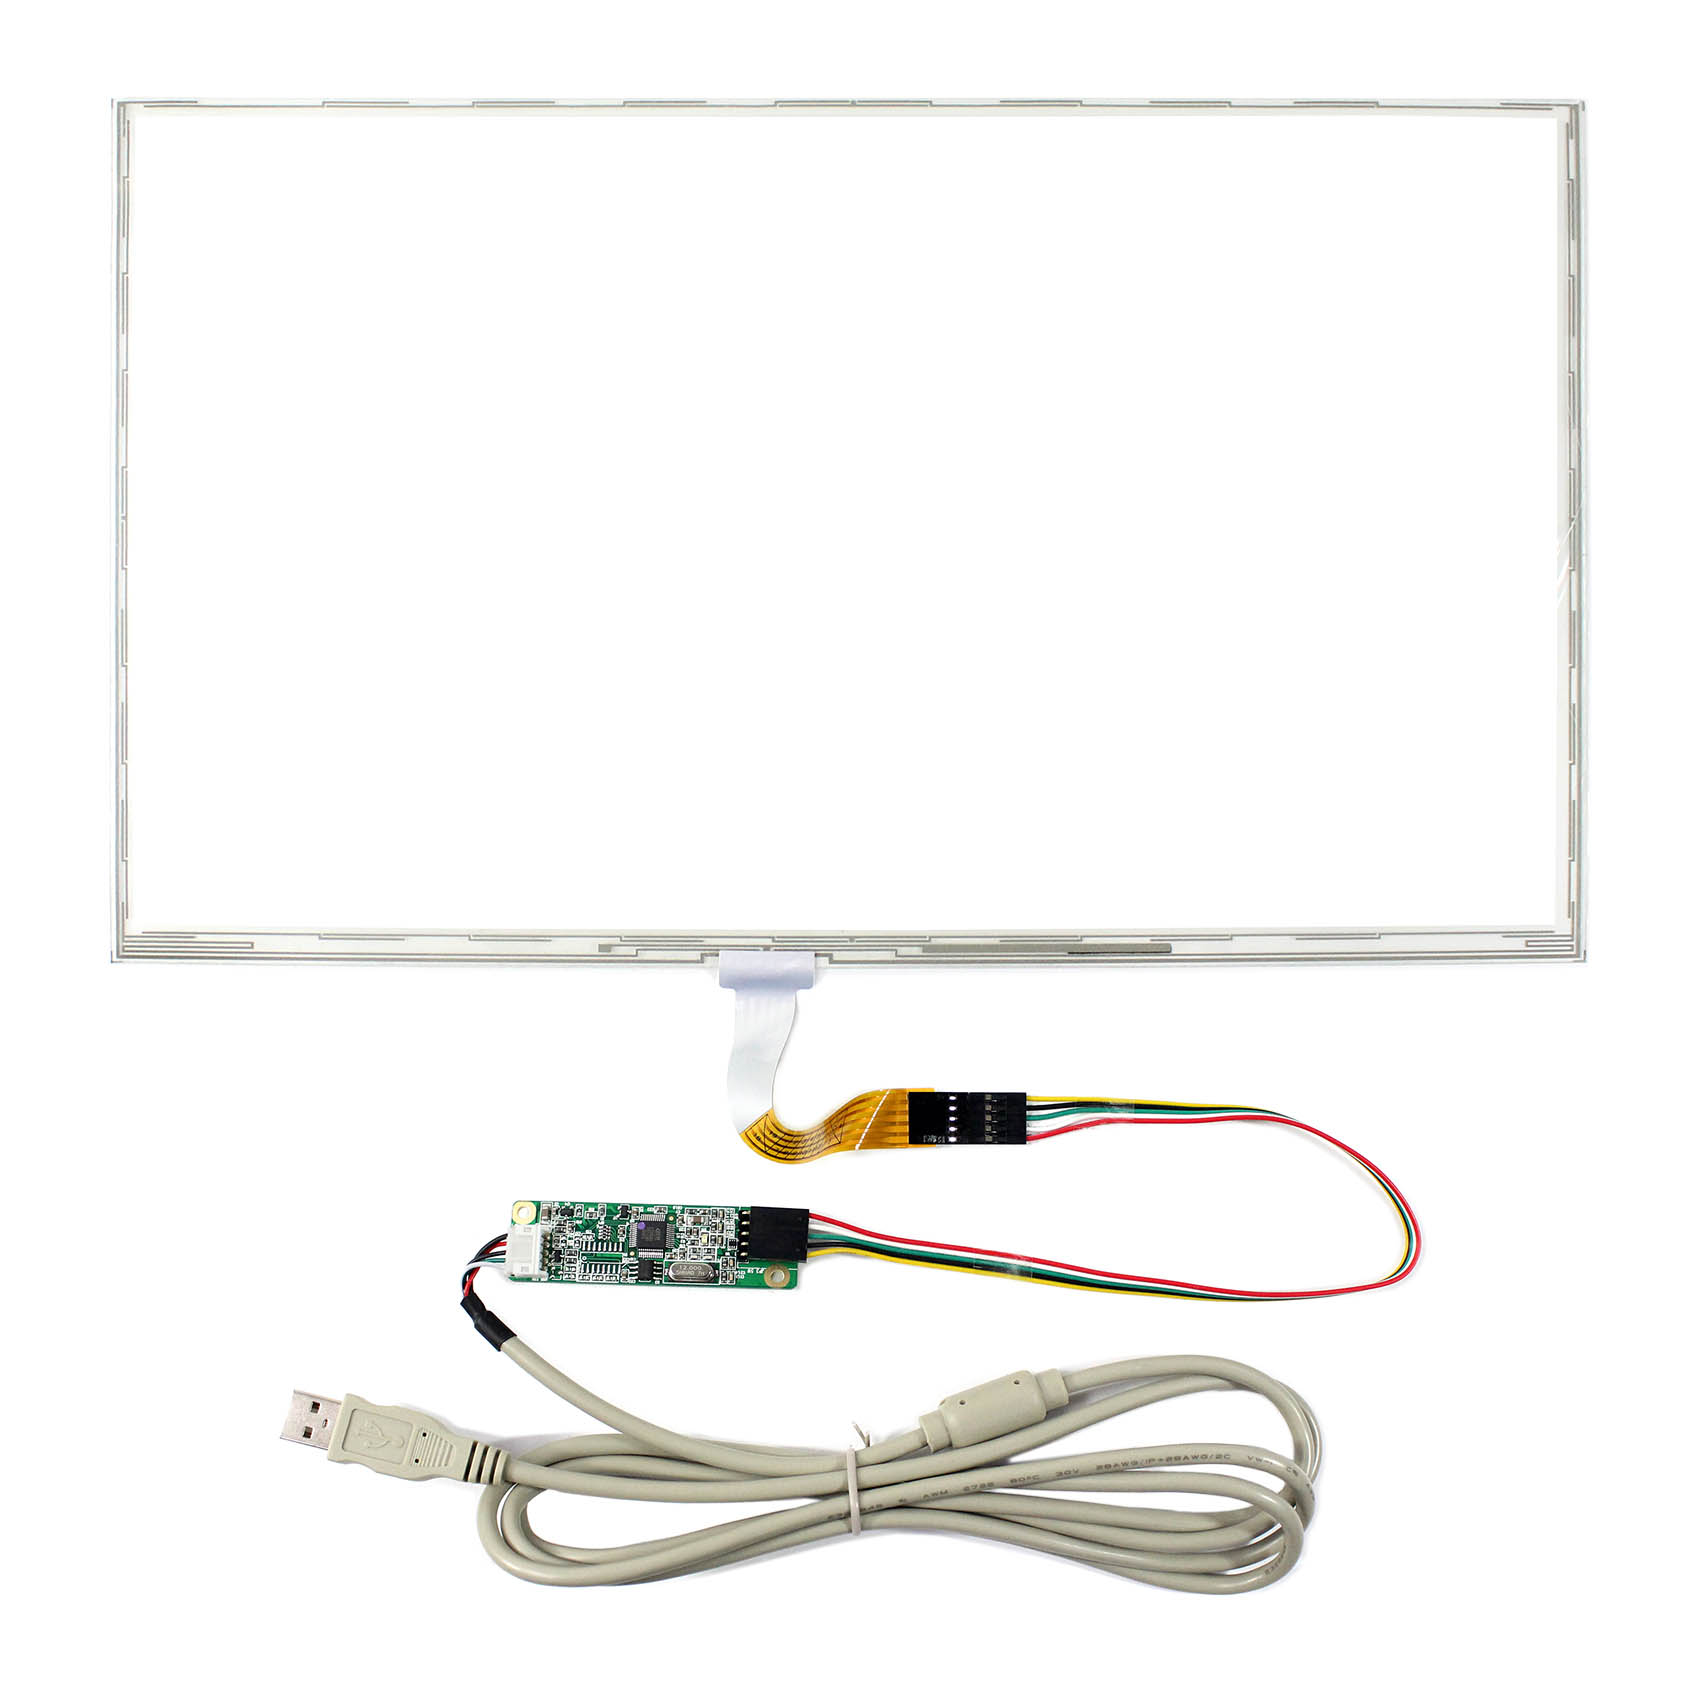 15.6 VS156TP-A2 Dimension Size 359mmx209mm 5-Wire Resistive Touch Panel 5pin FPC connector For 15.6inch LCD Display15.6 VS156TP-A2 Dimension Size 359mmx209mm 5-Wire Resistive Touch Panel 5pin FPC connector For 15.6inch LCD Display